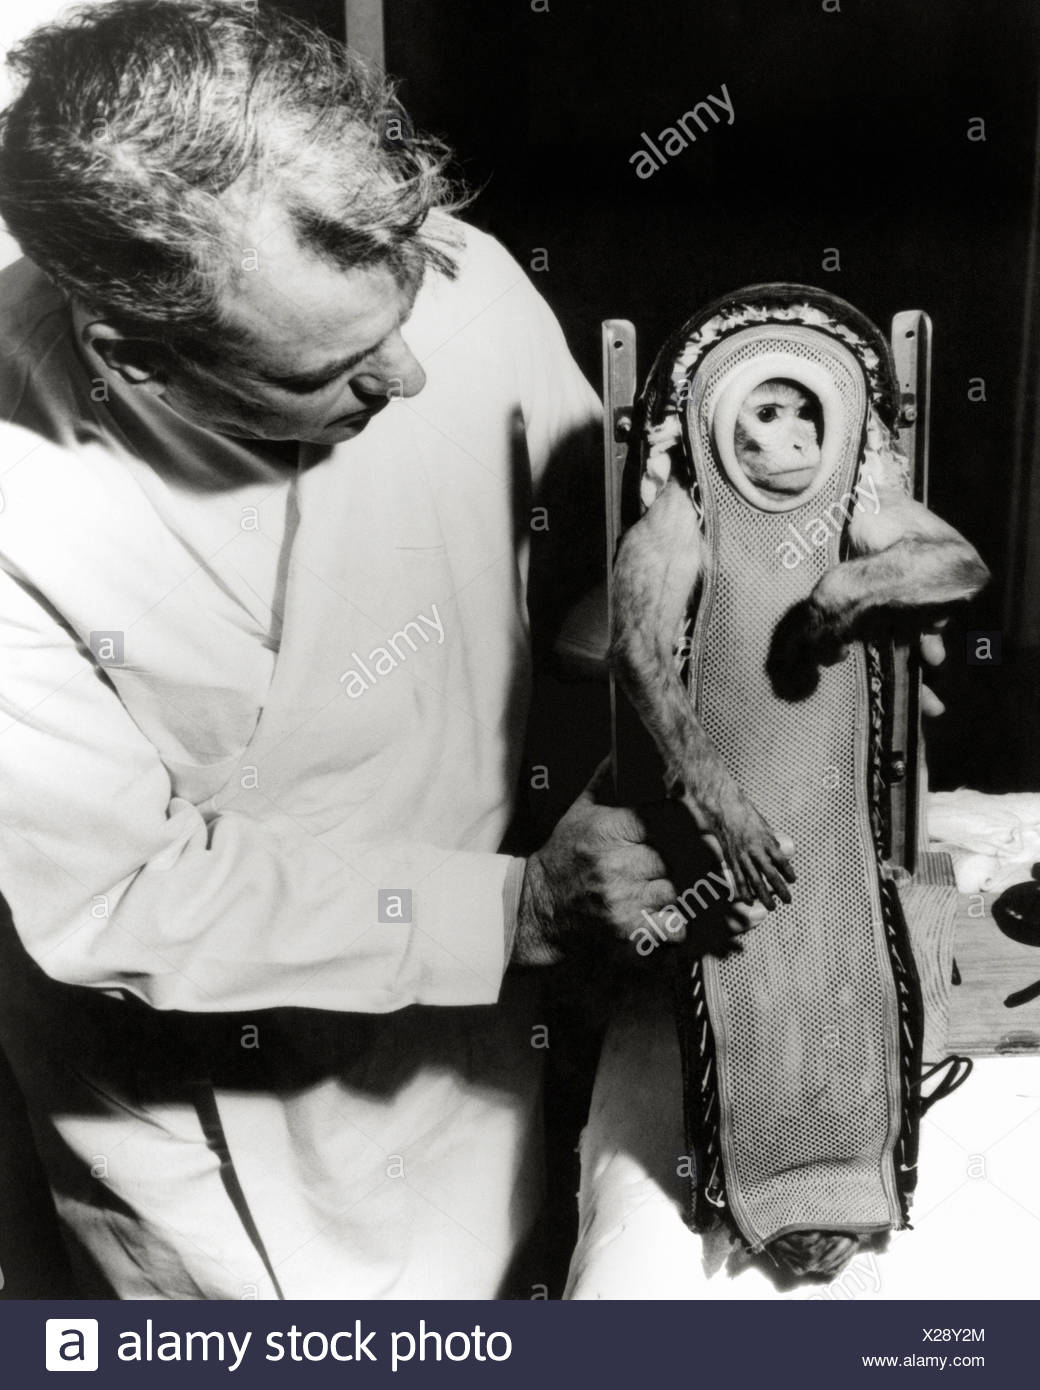 Sam the Monkey After His Ride In The Little Joe 2 Spacecraft - Stock Image